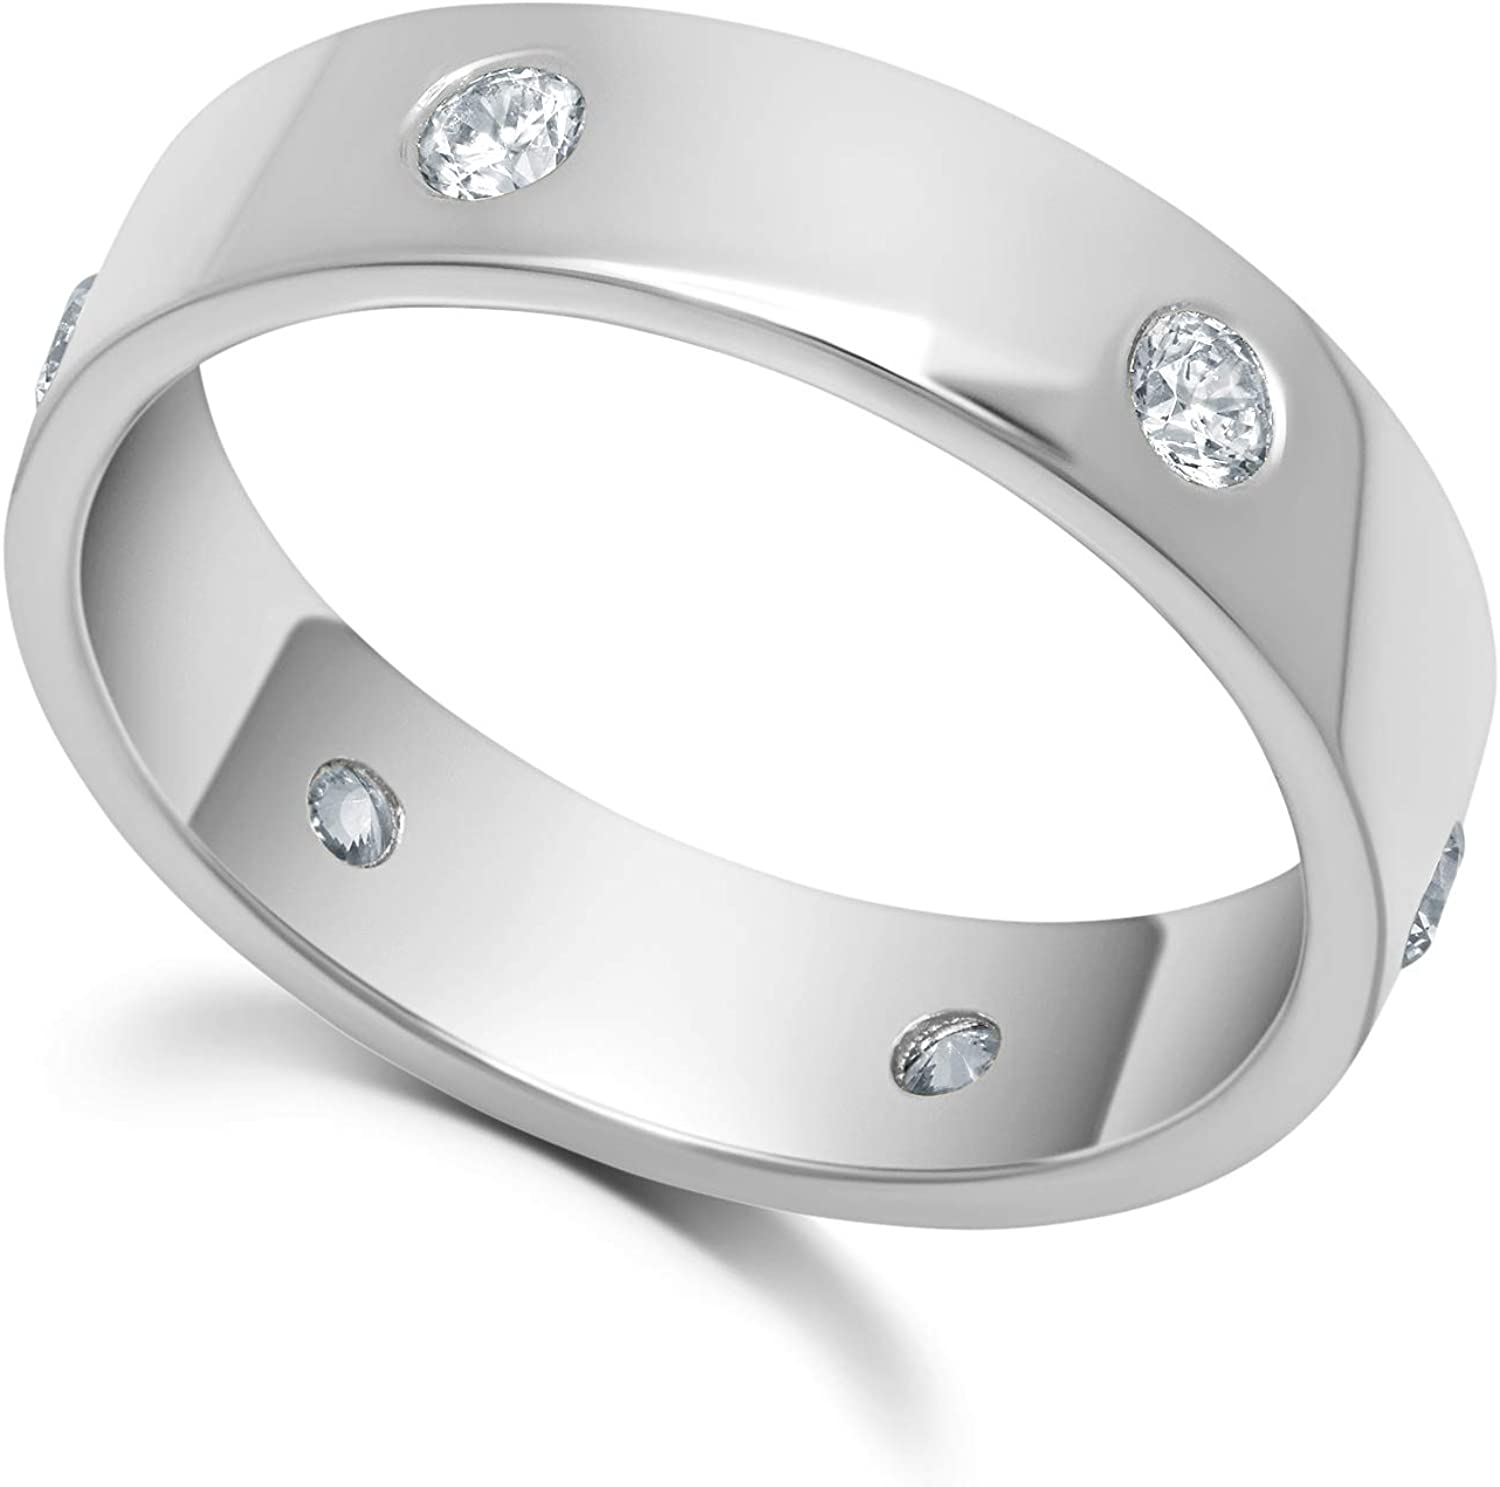 5mm Band with Eternity In-Lay CZ in Sterling Silver or Yellow Gold Overlay